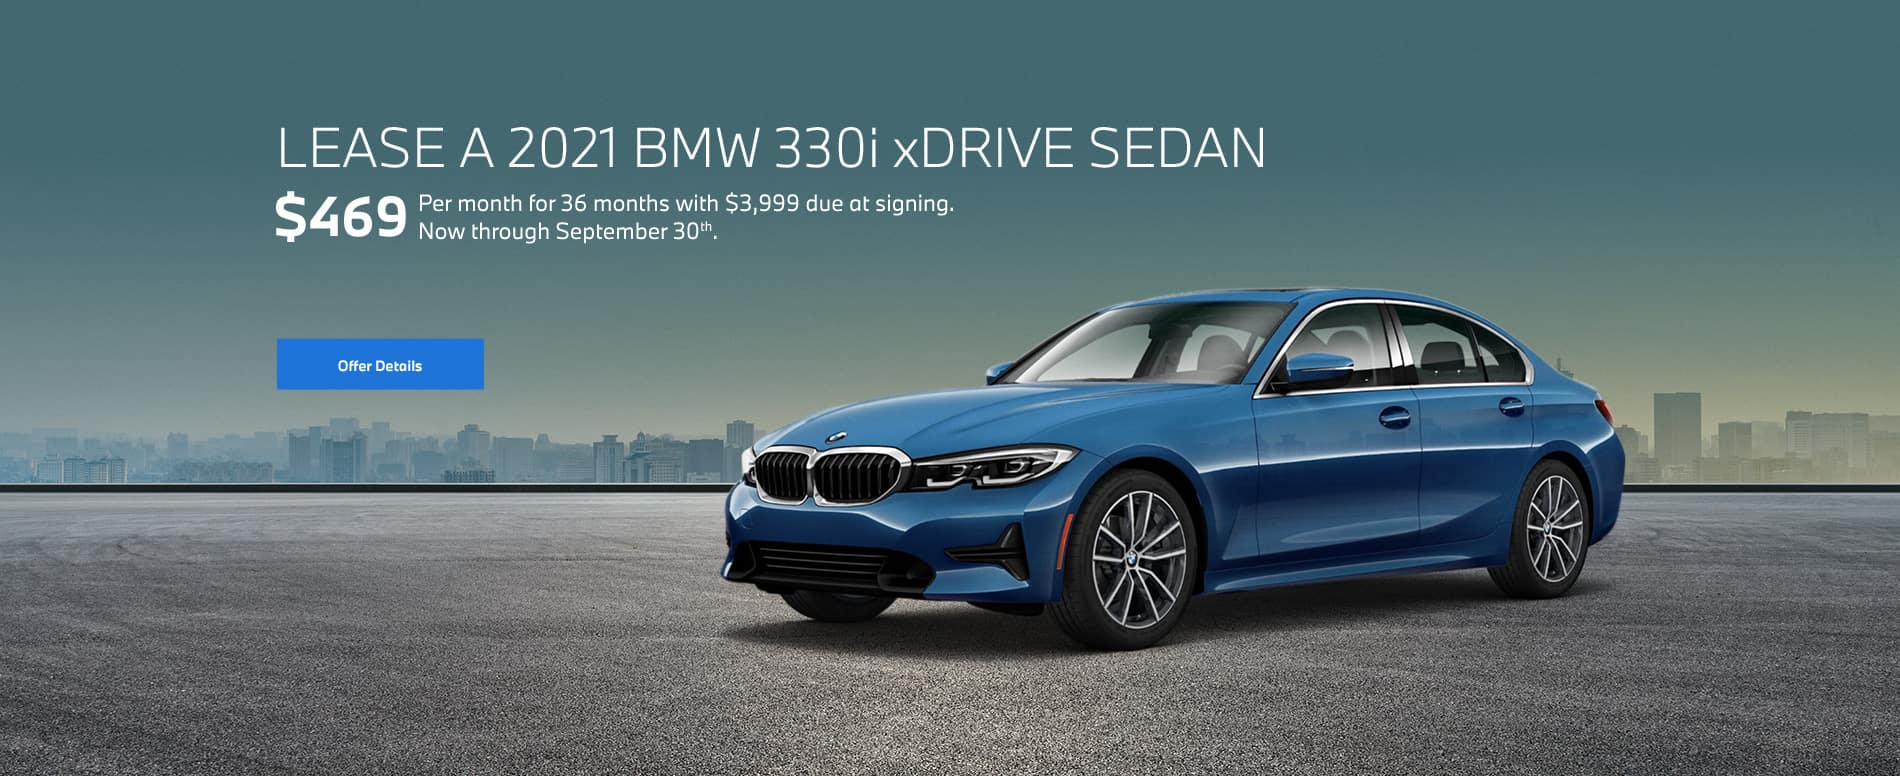 3 Series Lease Special